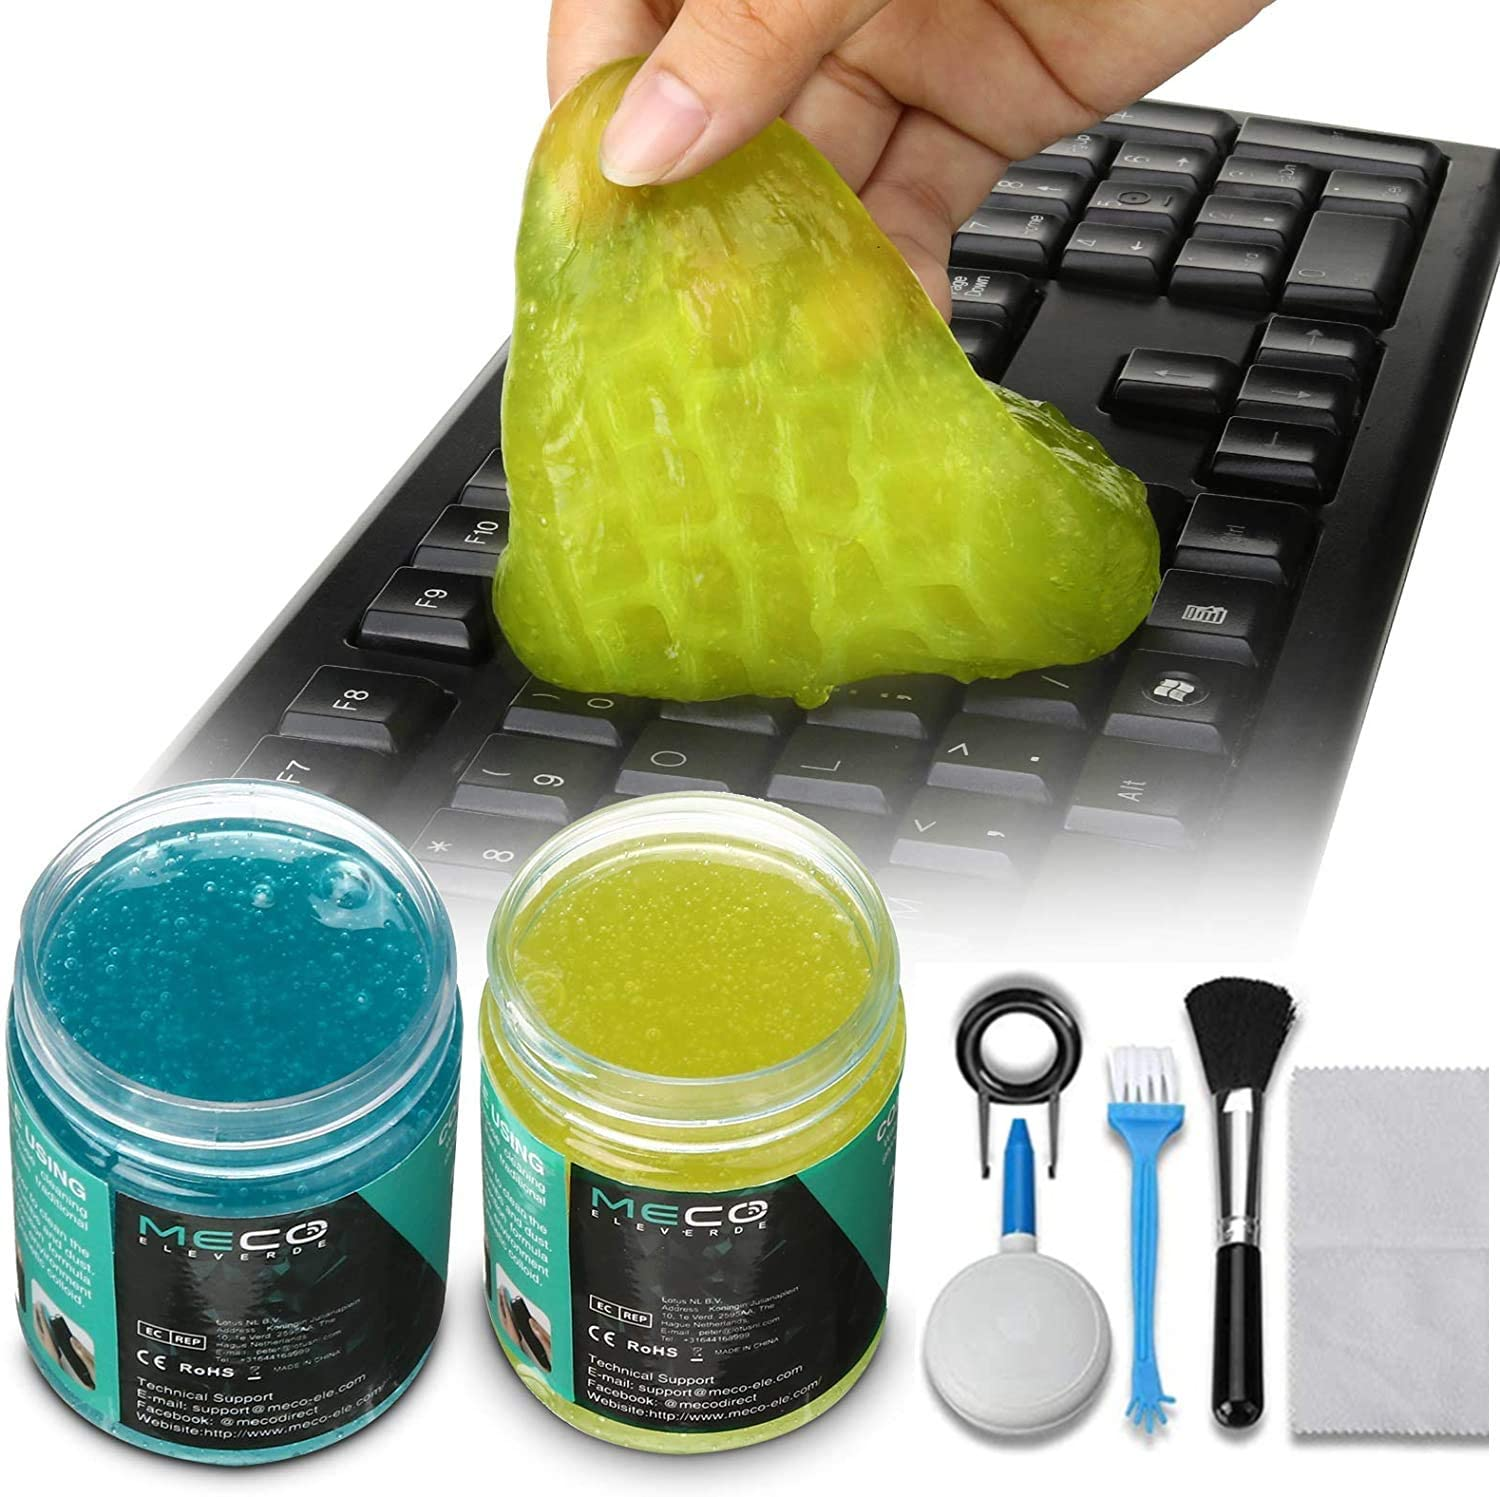 Car Vents Calculators Dust Removing Cameras Keyboard Cleaner Adhesive Universal Cleaning Gel Magic Cleaner for PC Tablet Laptop Keyboards Printers